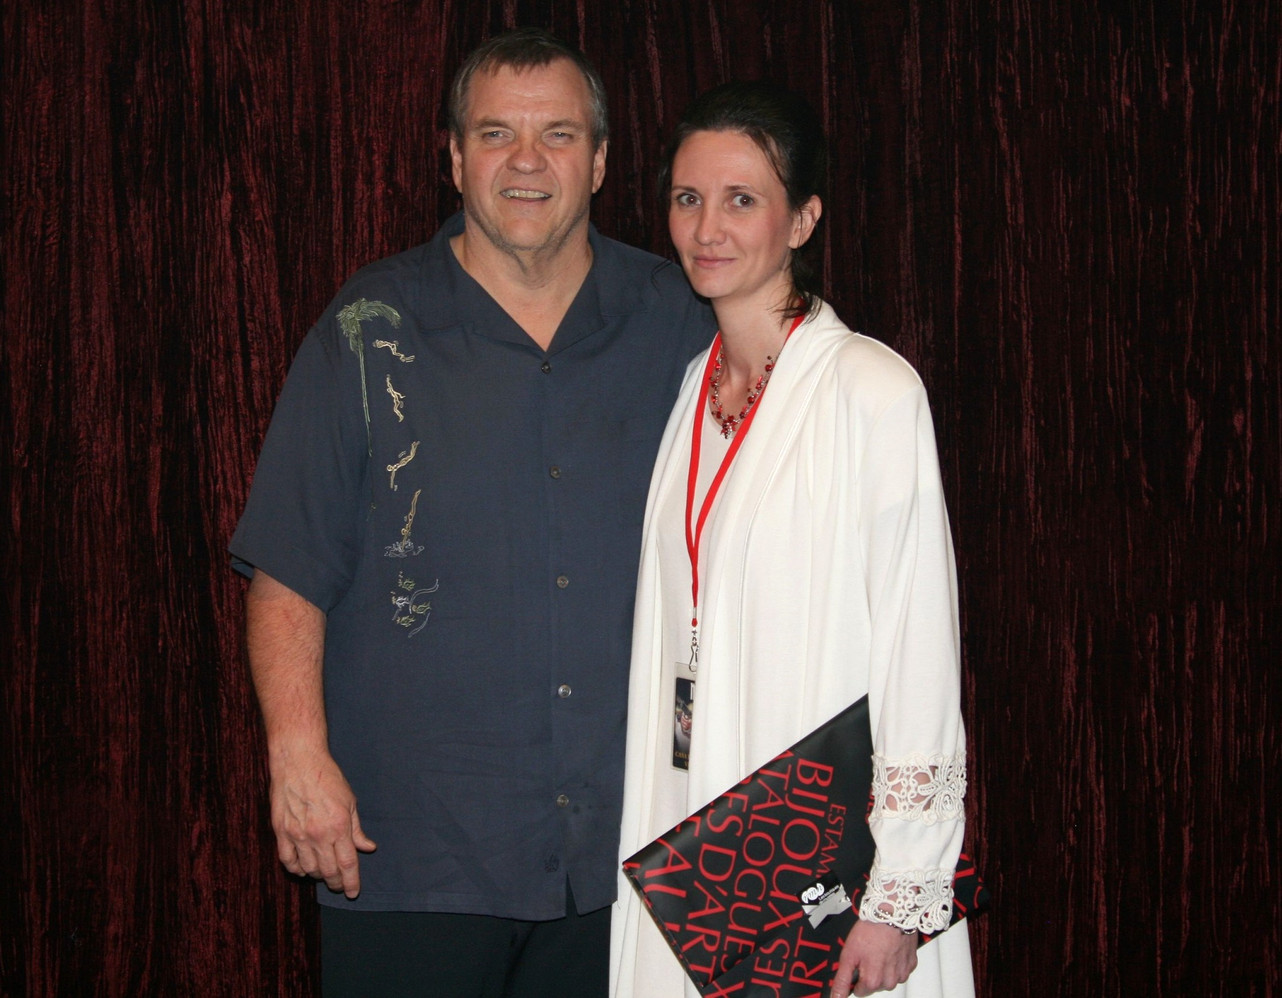 Florence Bouvrot & Meat Loaf - Asbury Park, New Jersey